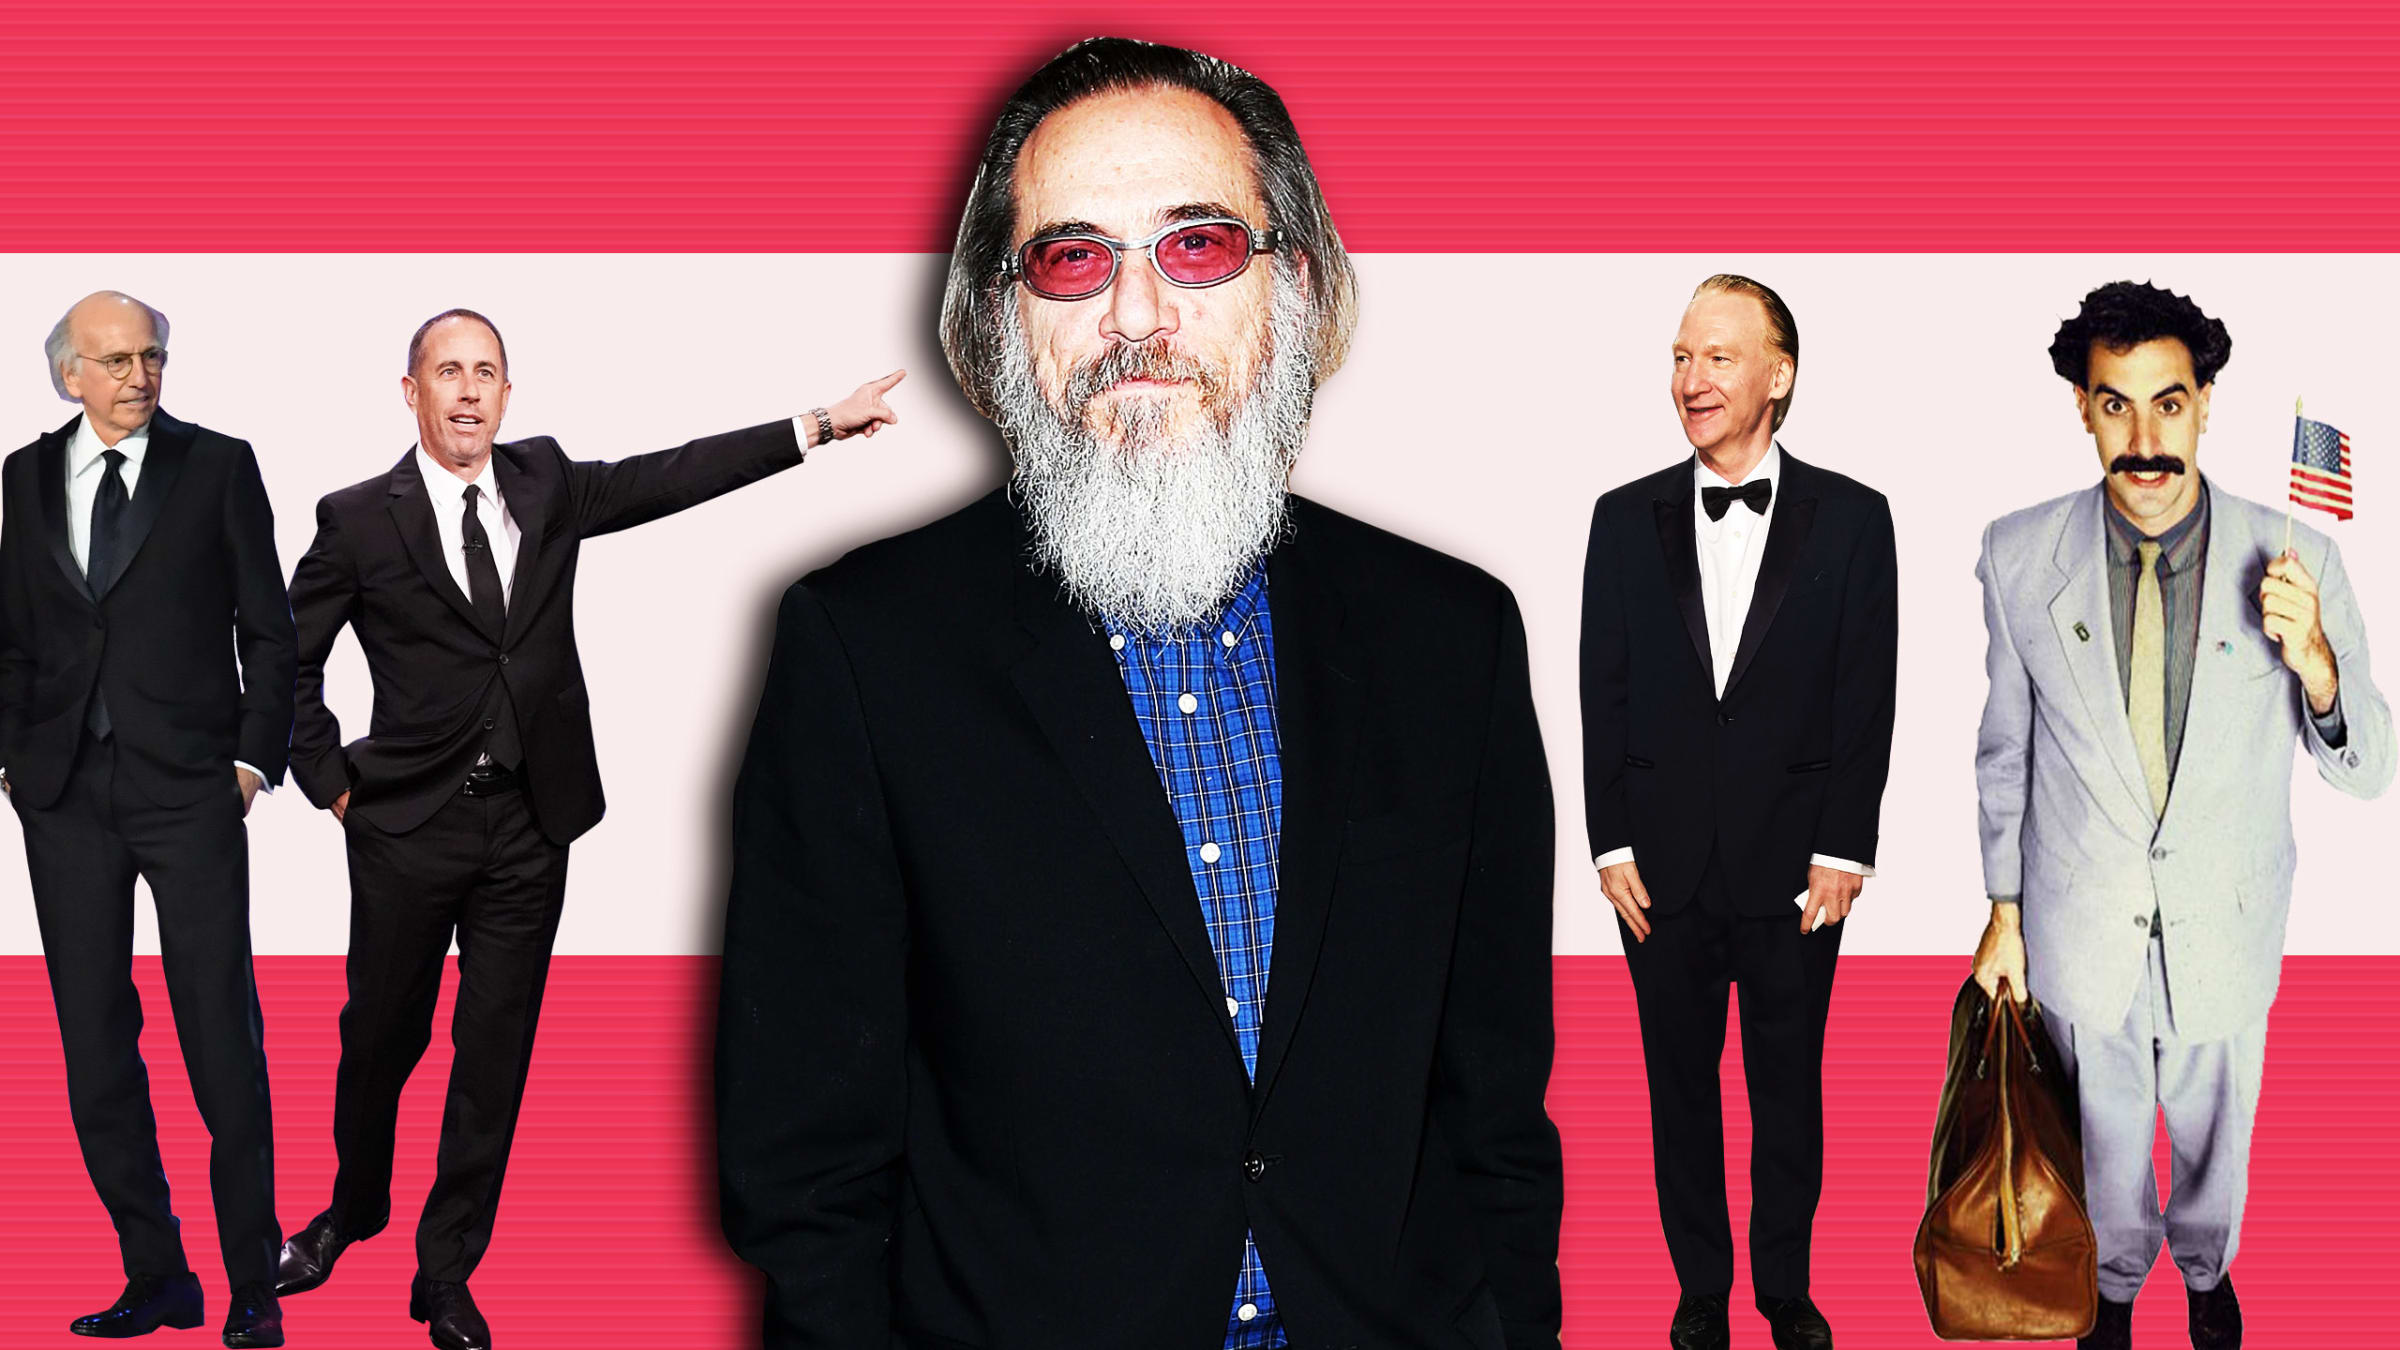 f56fefa1e3b 'Seinfeld,' 'Curb' and 'Borat' All Led to 'Larry Charles' Dangerous World  of Comedy'